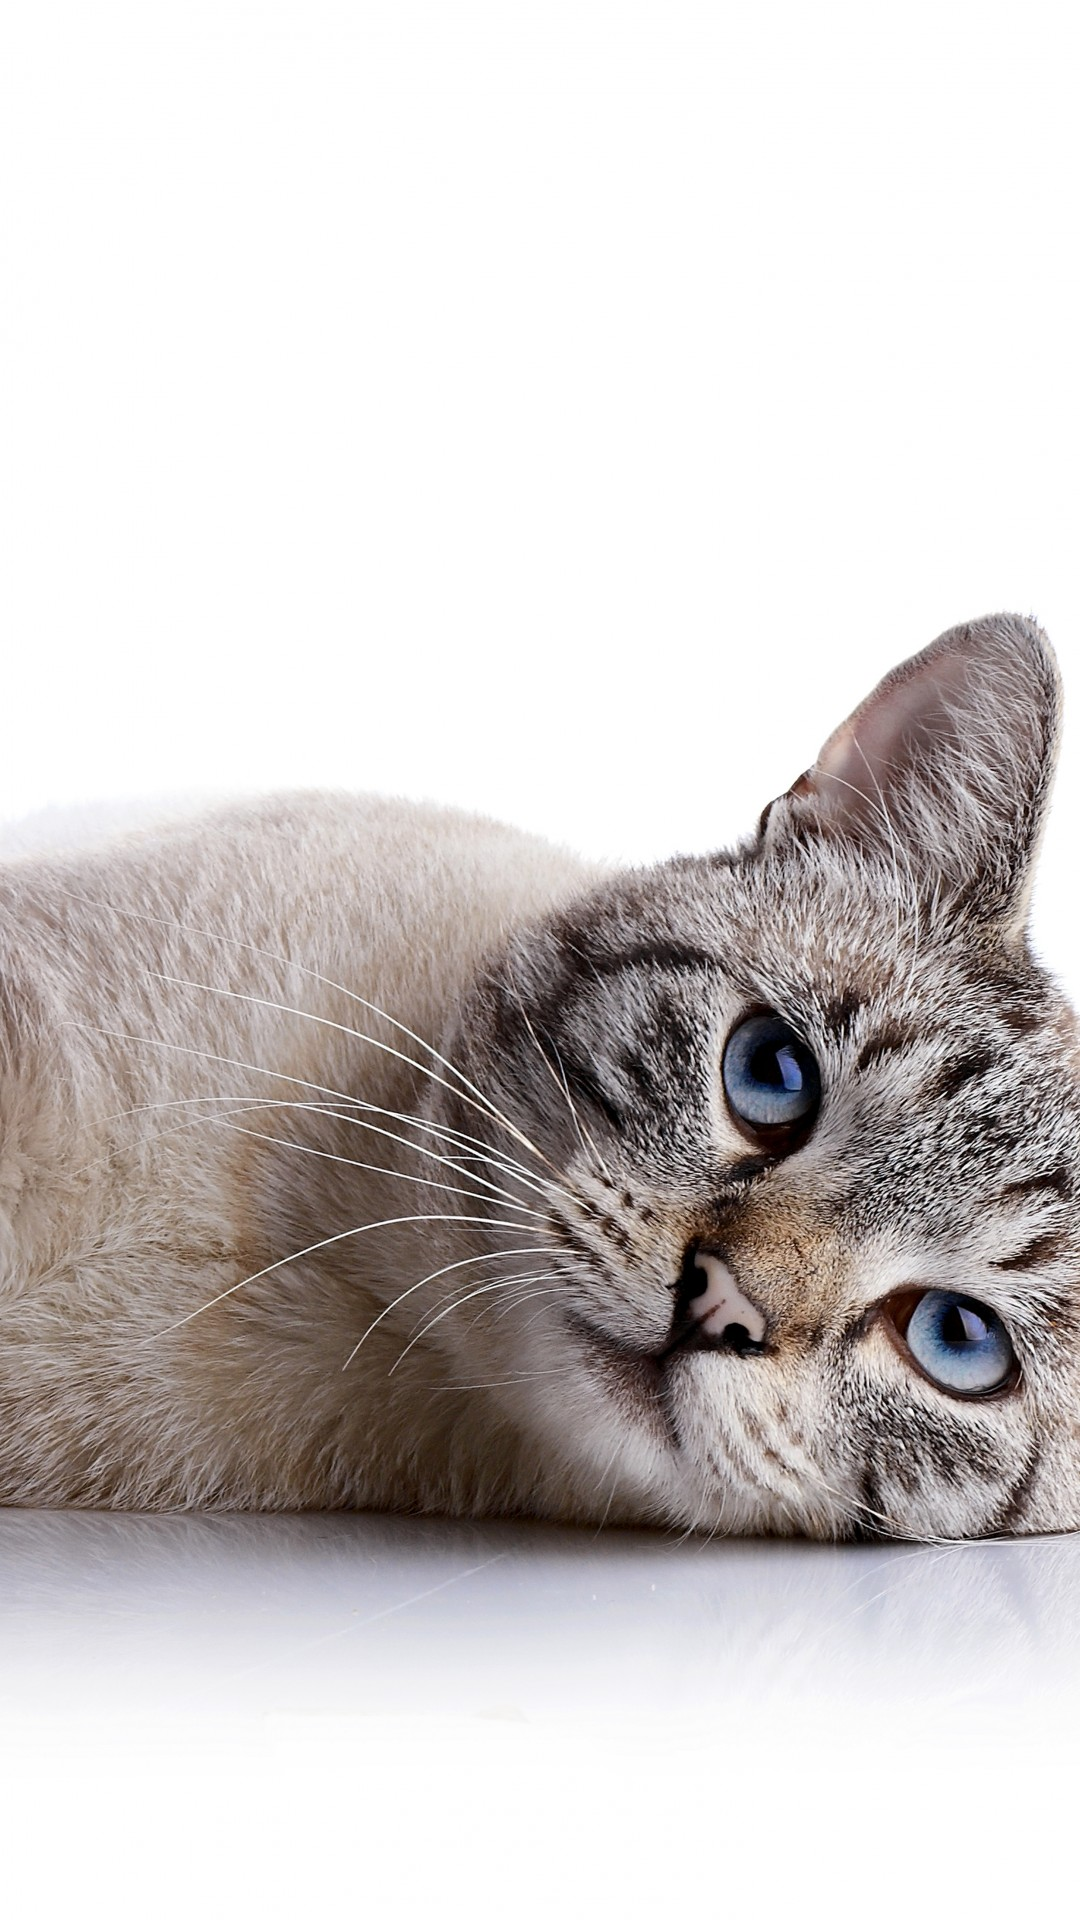 Cute Cat Hd Wallpaper Download Wallpaper Cat Cute Animals 8k Animals 15371